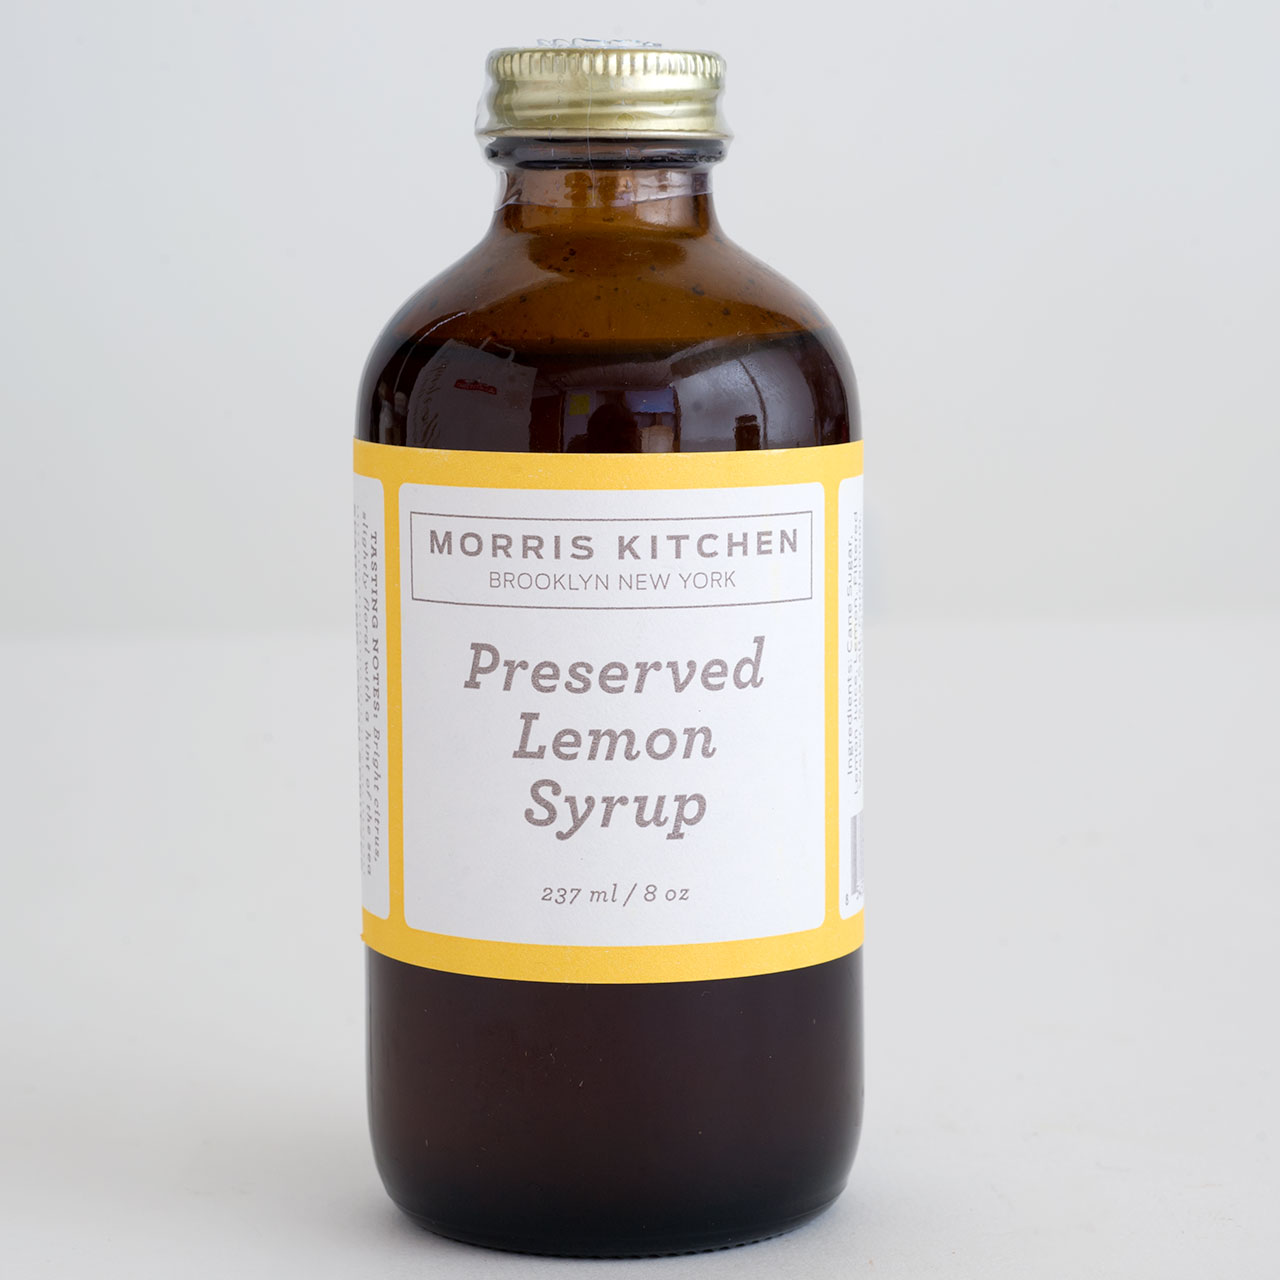 Morris Kitchen Preserved Lemon Syrup